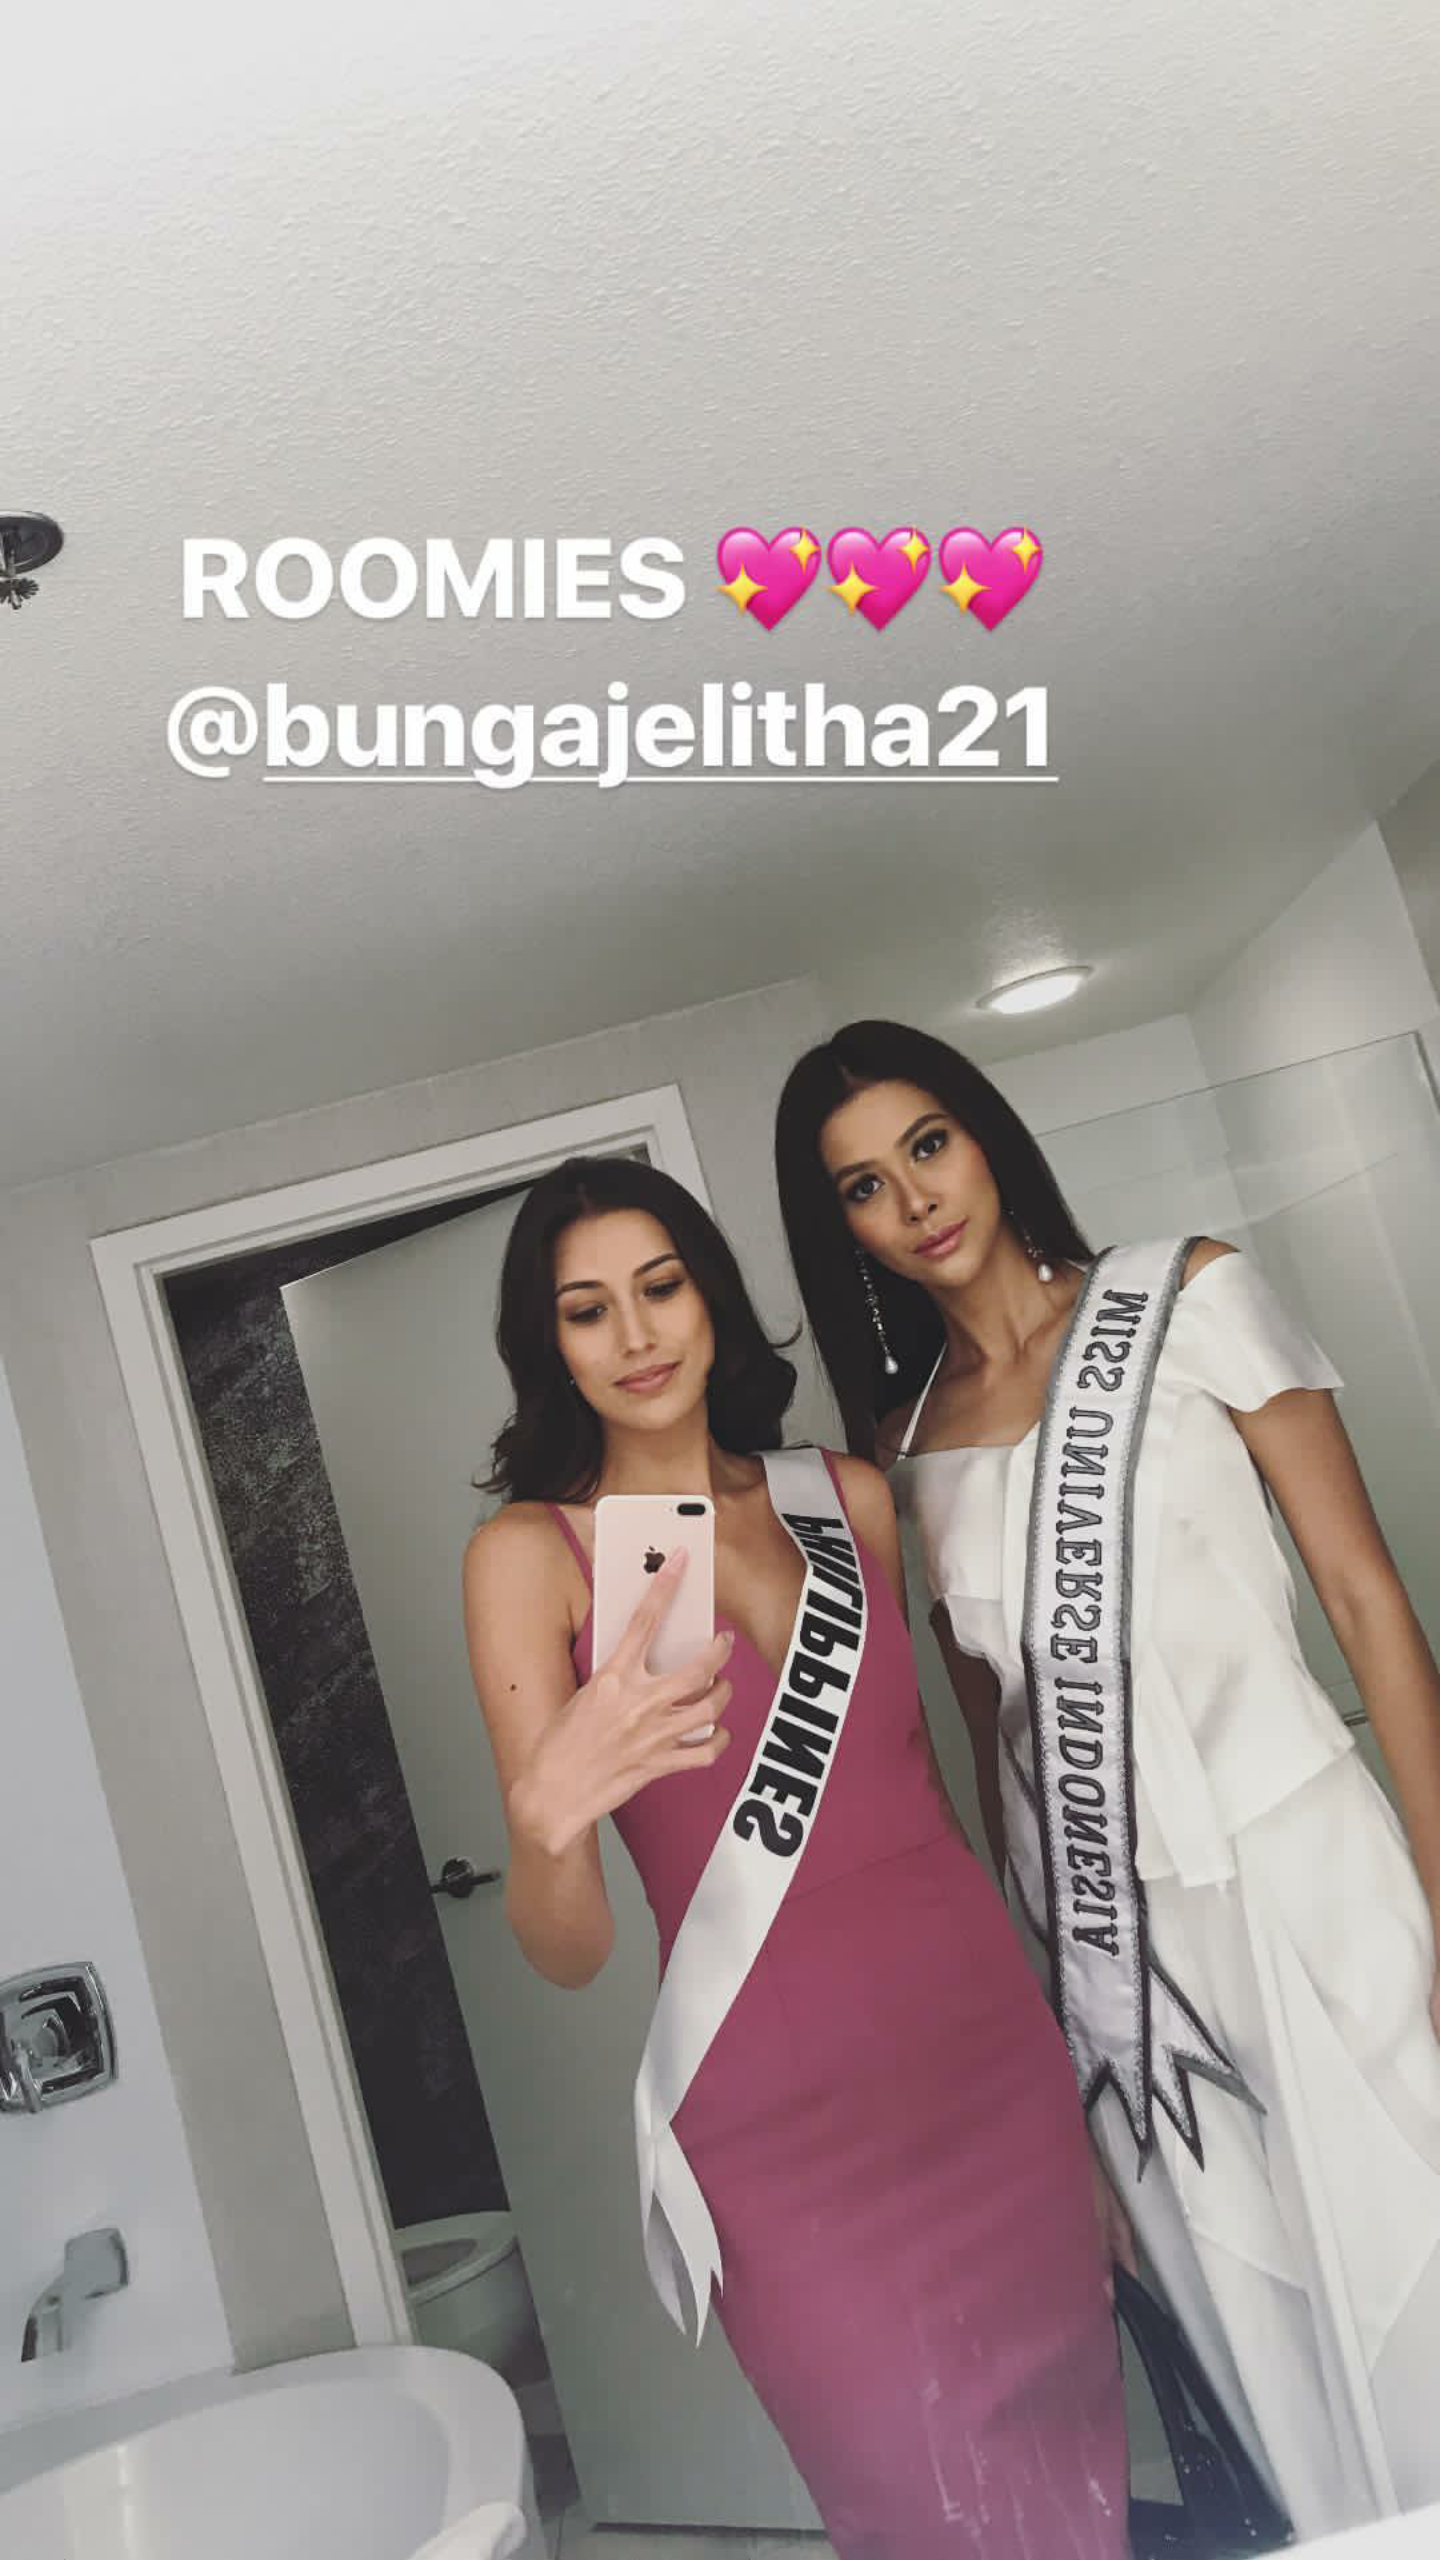 LOOK: Philippines, Indonesia are Miss Universe 2017 roomies